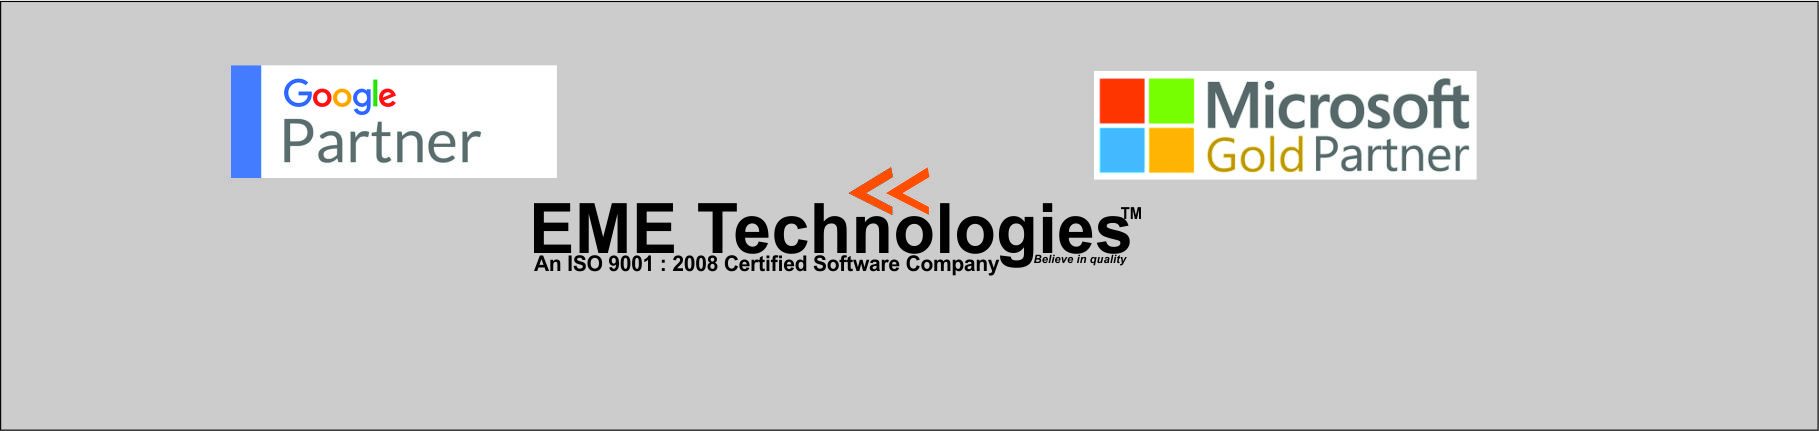 Image for Java industrial training in chandigarh